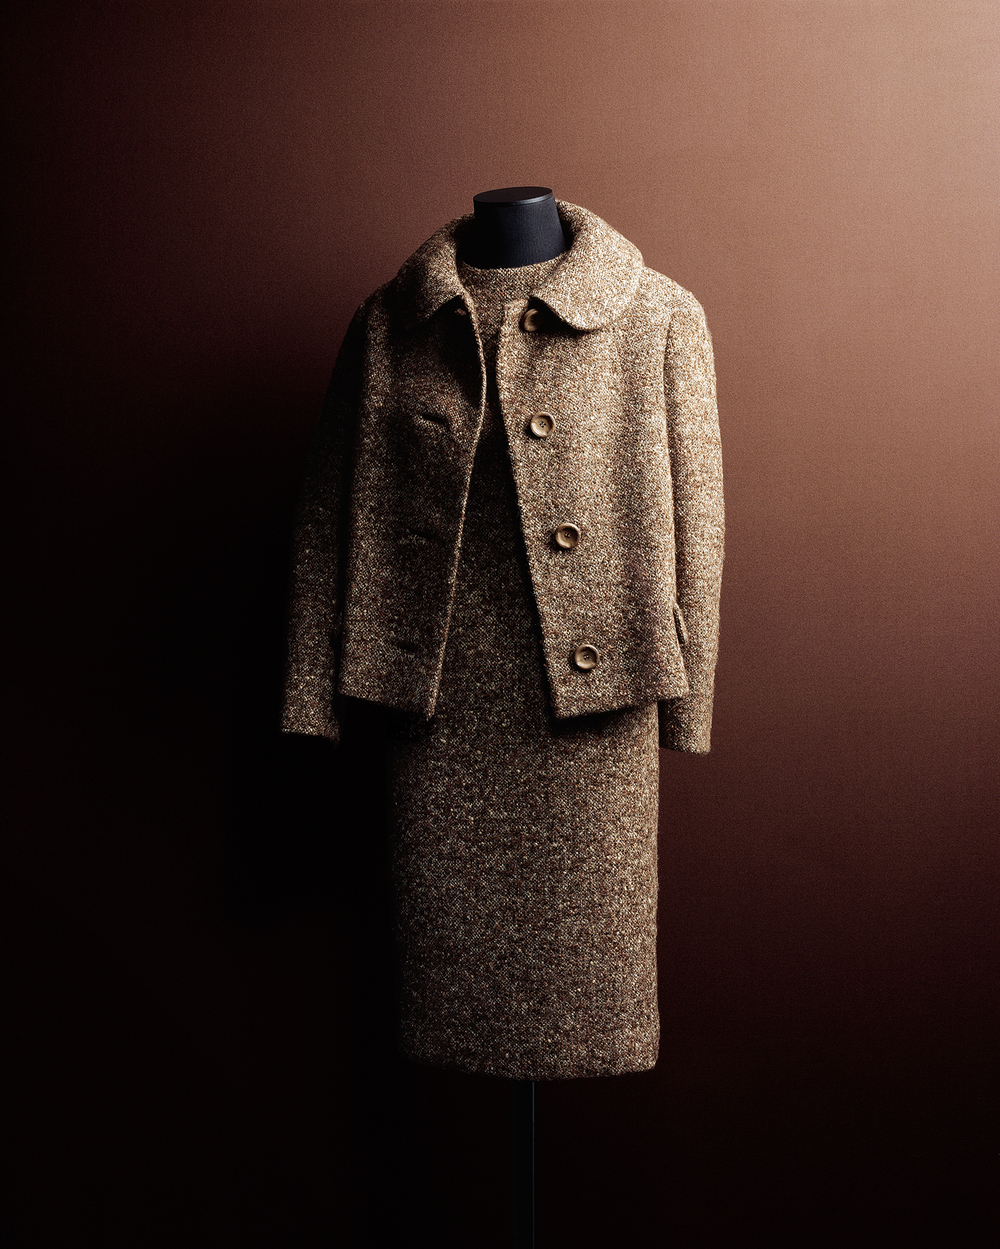 the_tree_mag-coats-by-maxmara-by-dhyan-bodha-derasmo-g-70.jpg